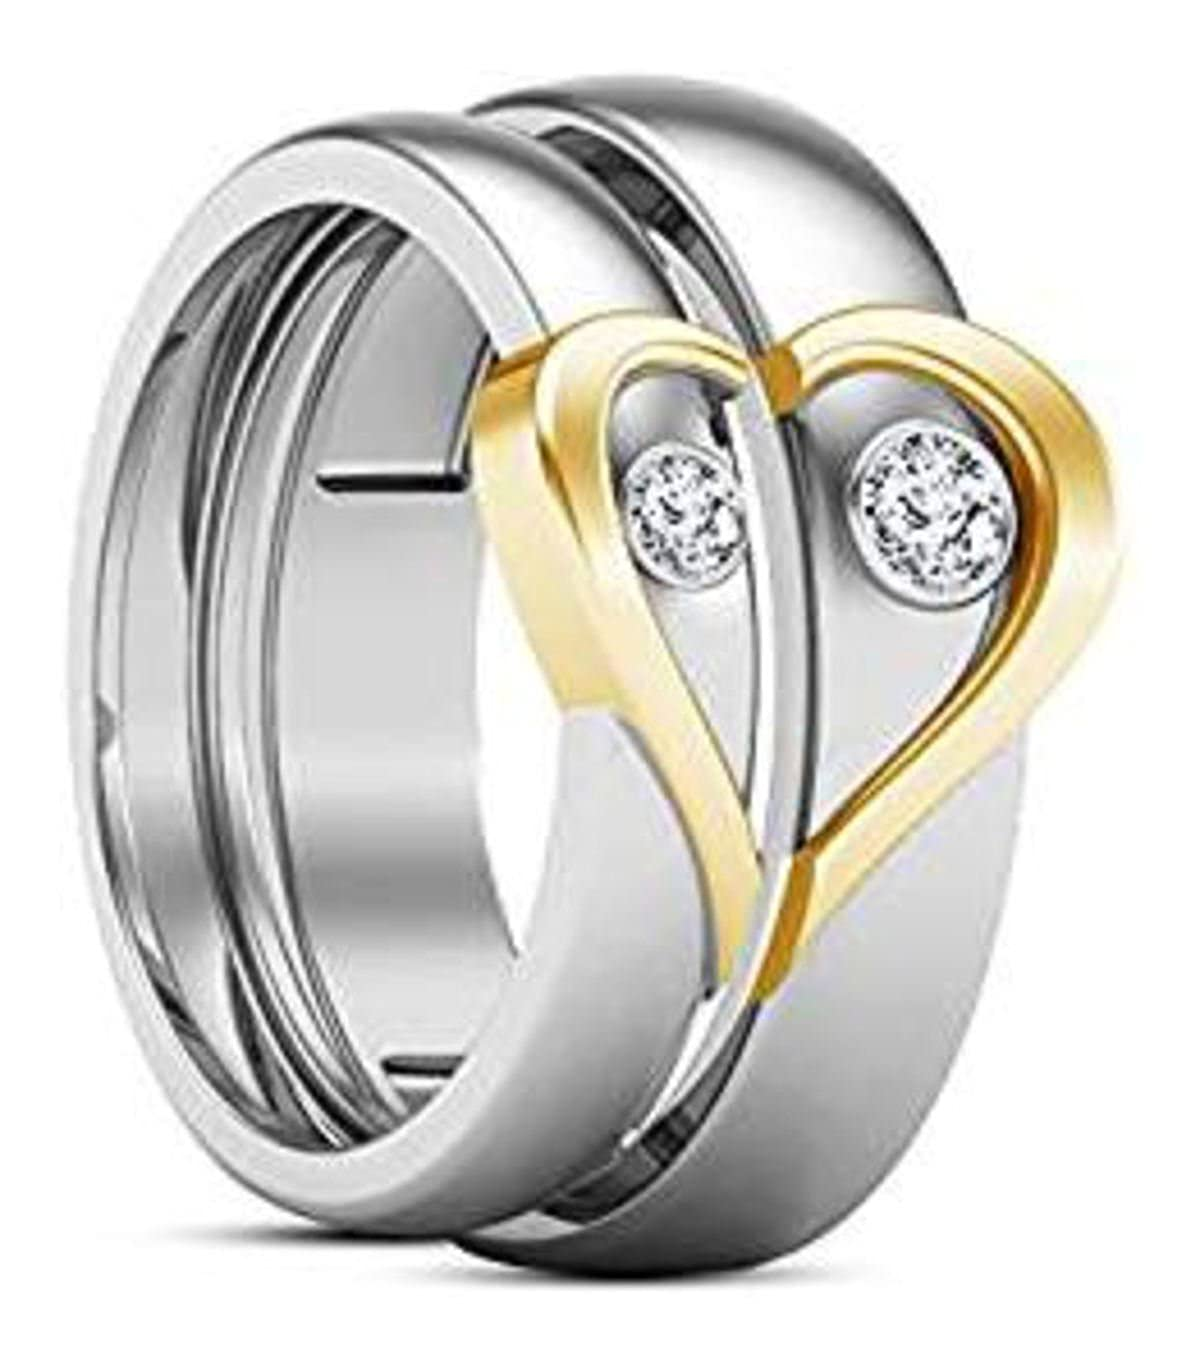 61c5d4f70aba5 Buy ANVI JEWELLERS Stainless Steel Grey Love Couple Ring for Men and ...